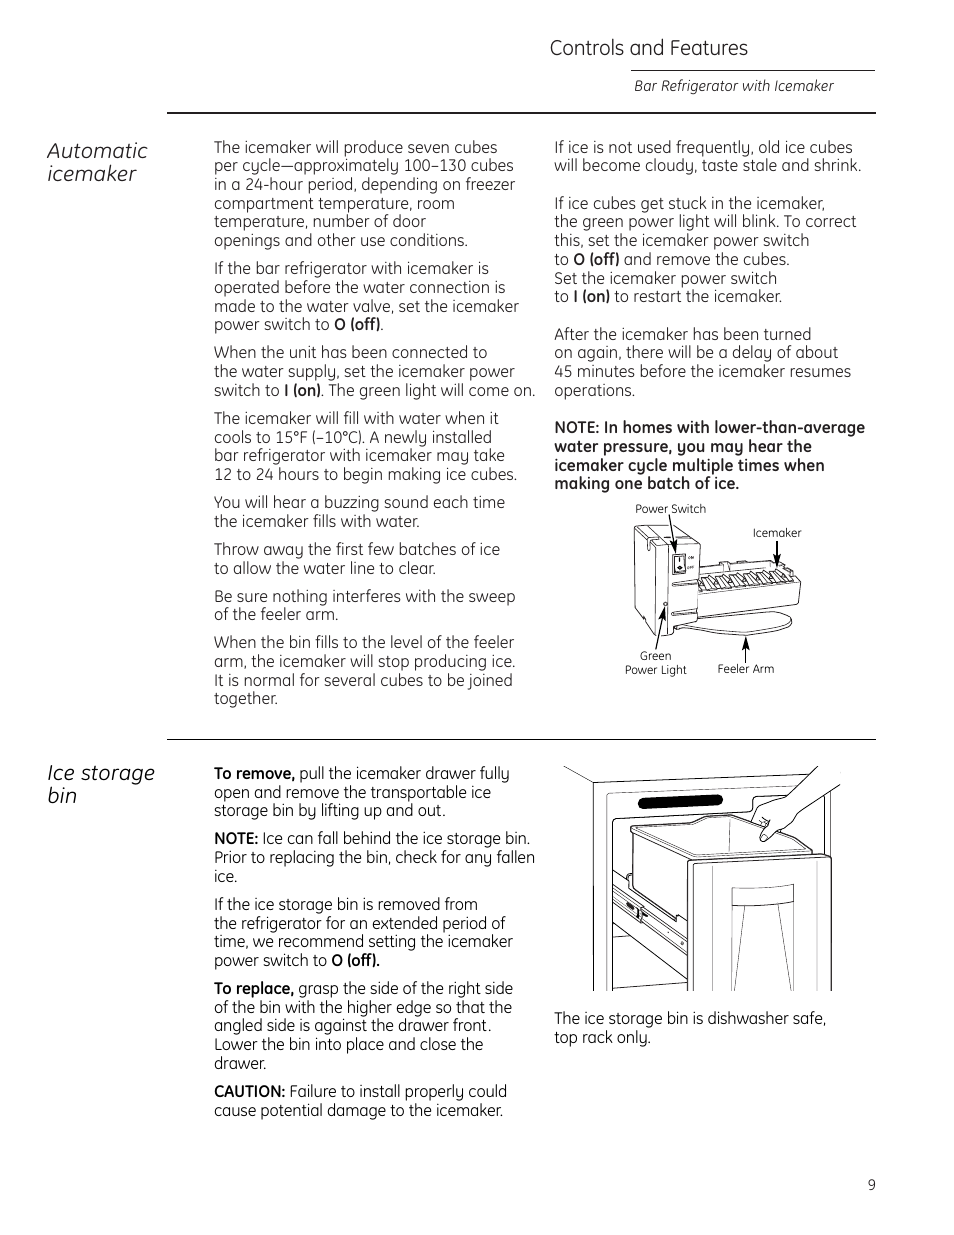 Controls and features, Automatic icemaker, Ice storage bin | GE Monogram  ZIBS240PSS User Manual